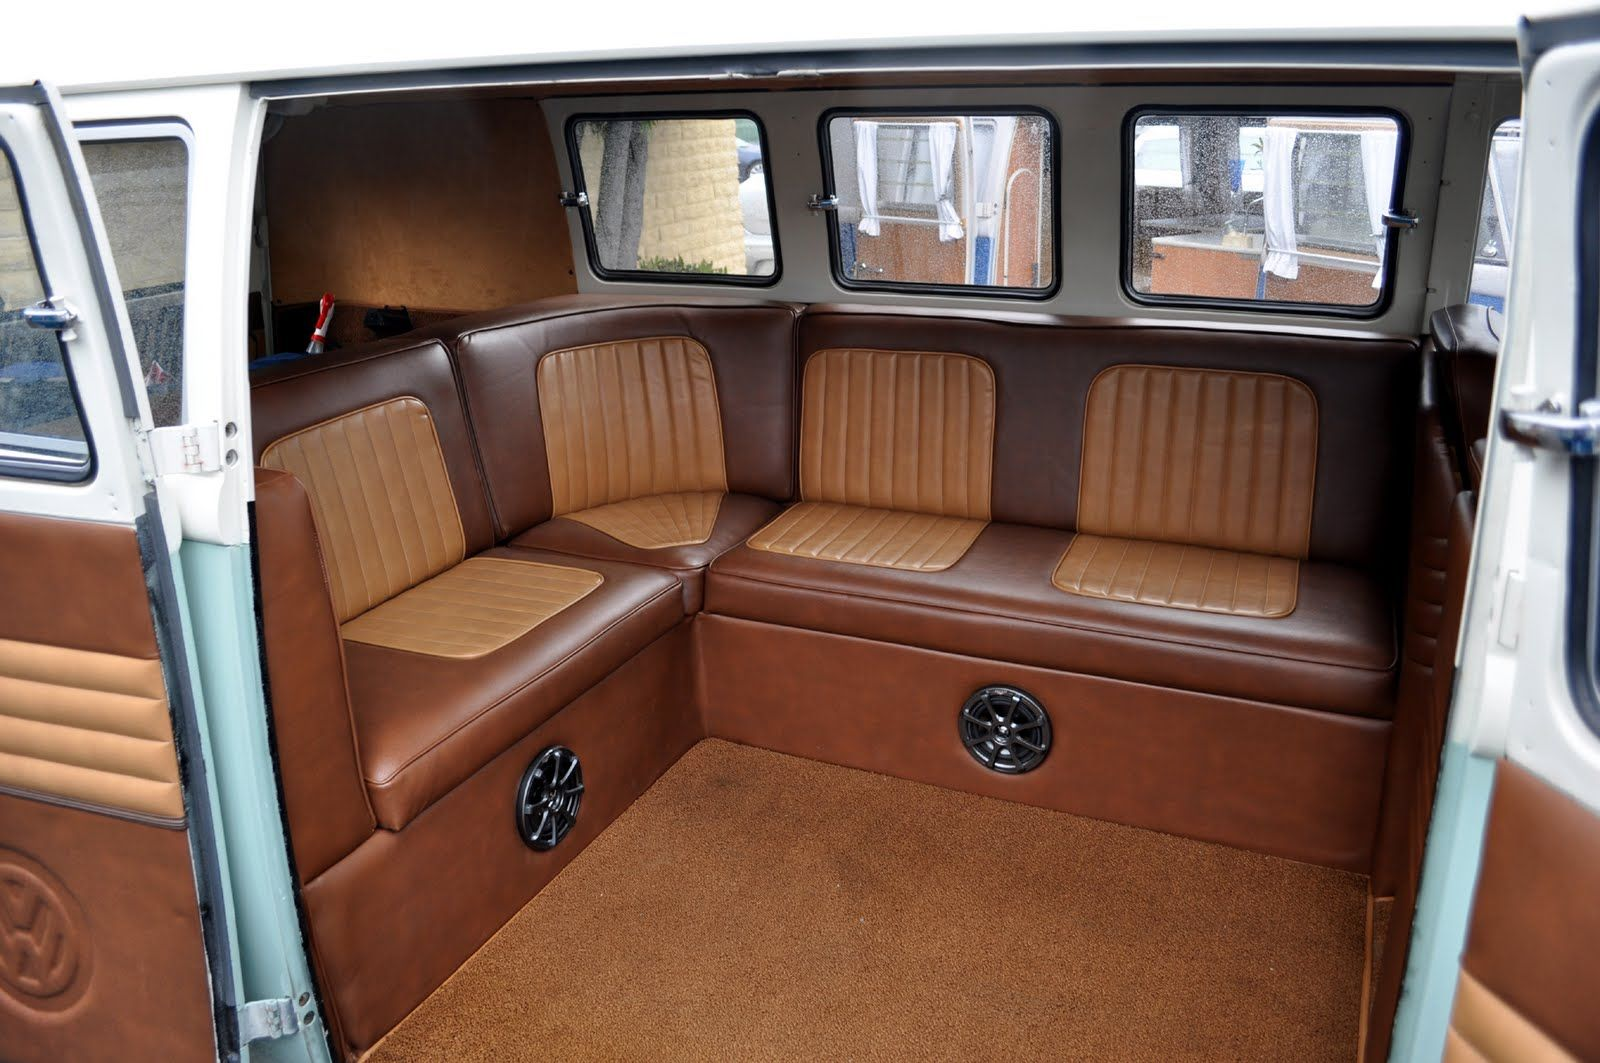 Pin By Kristen Sheets On Baby Volkswagen Bus Interior Vw Bus Interior Bus Interior